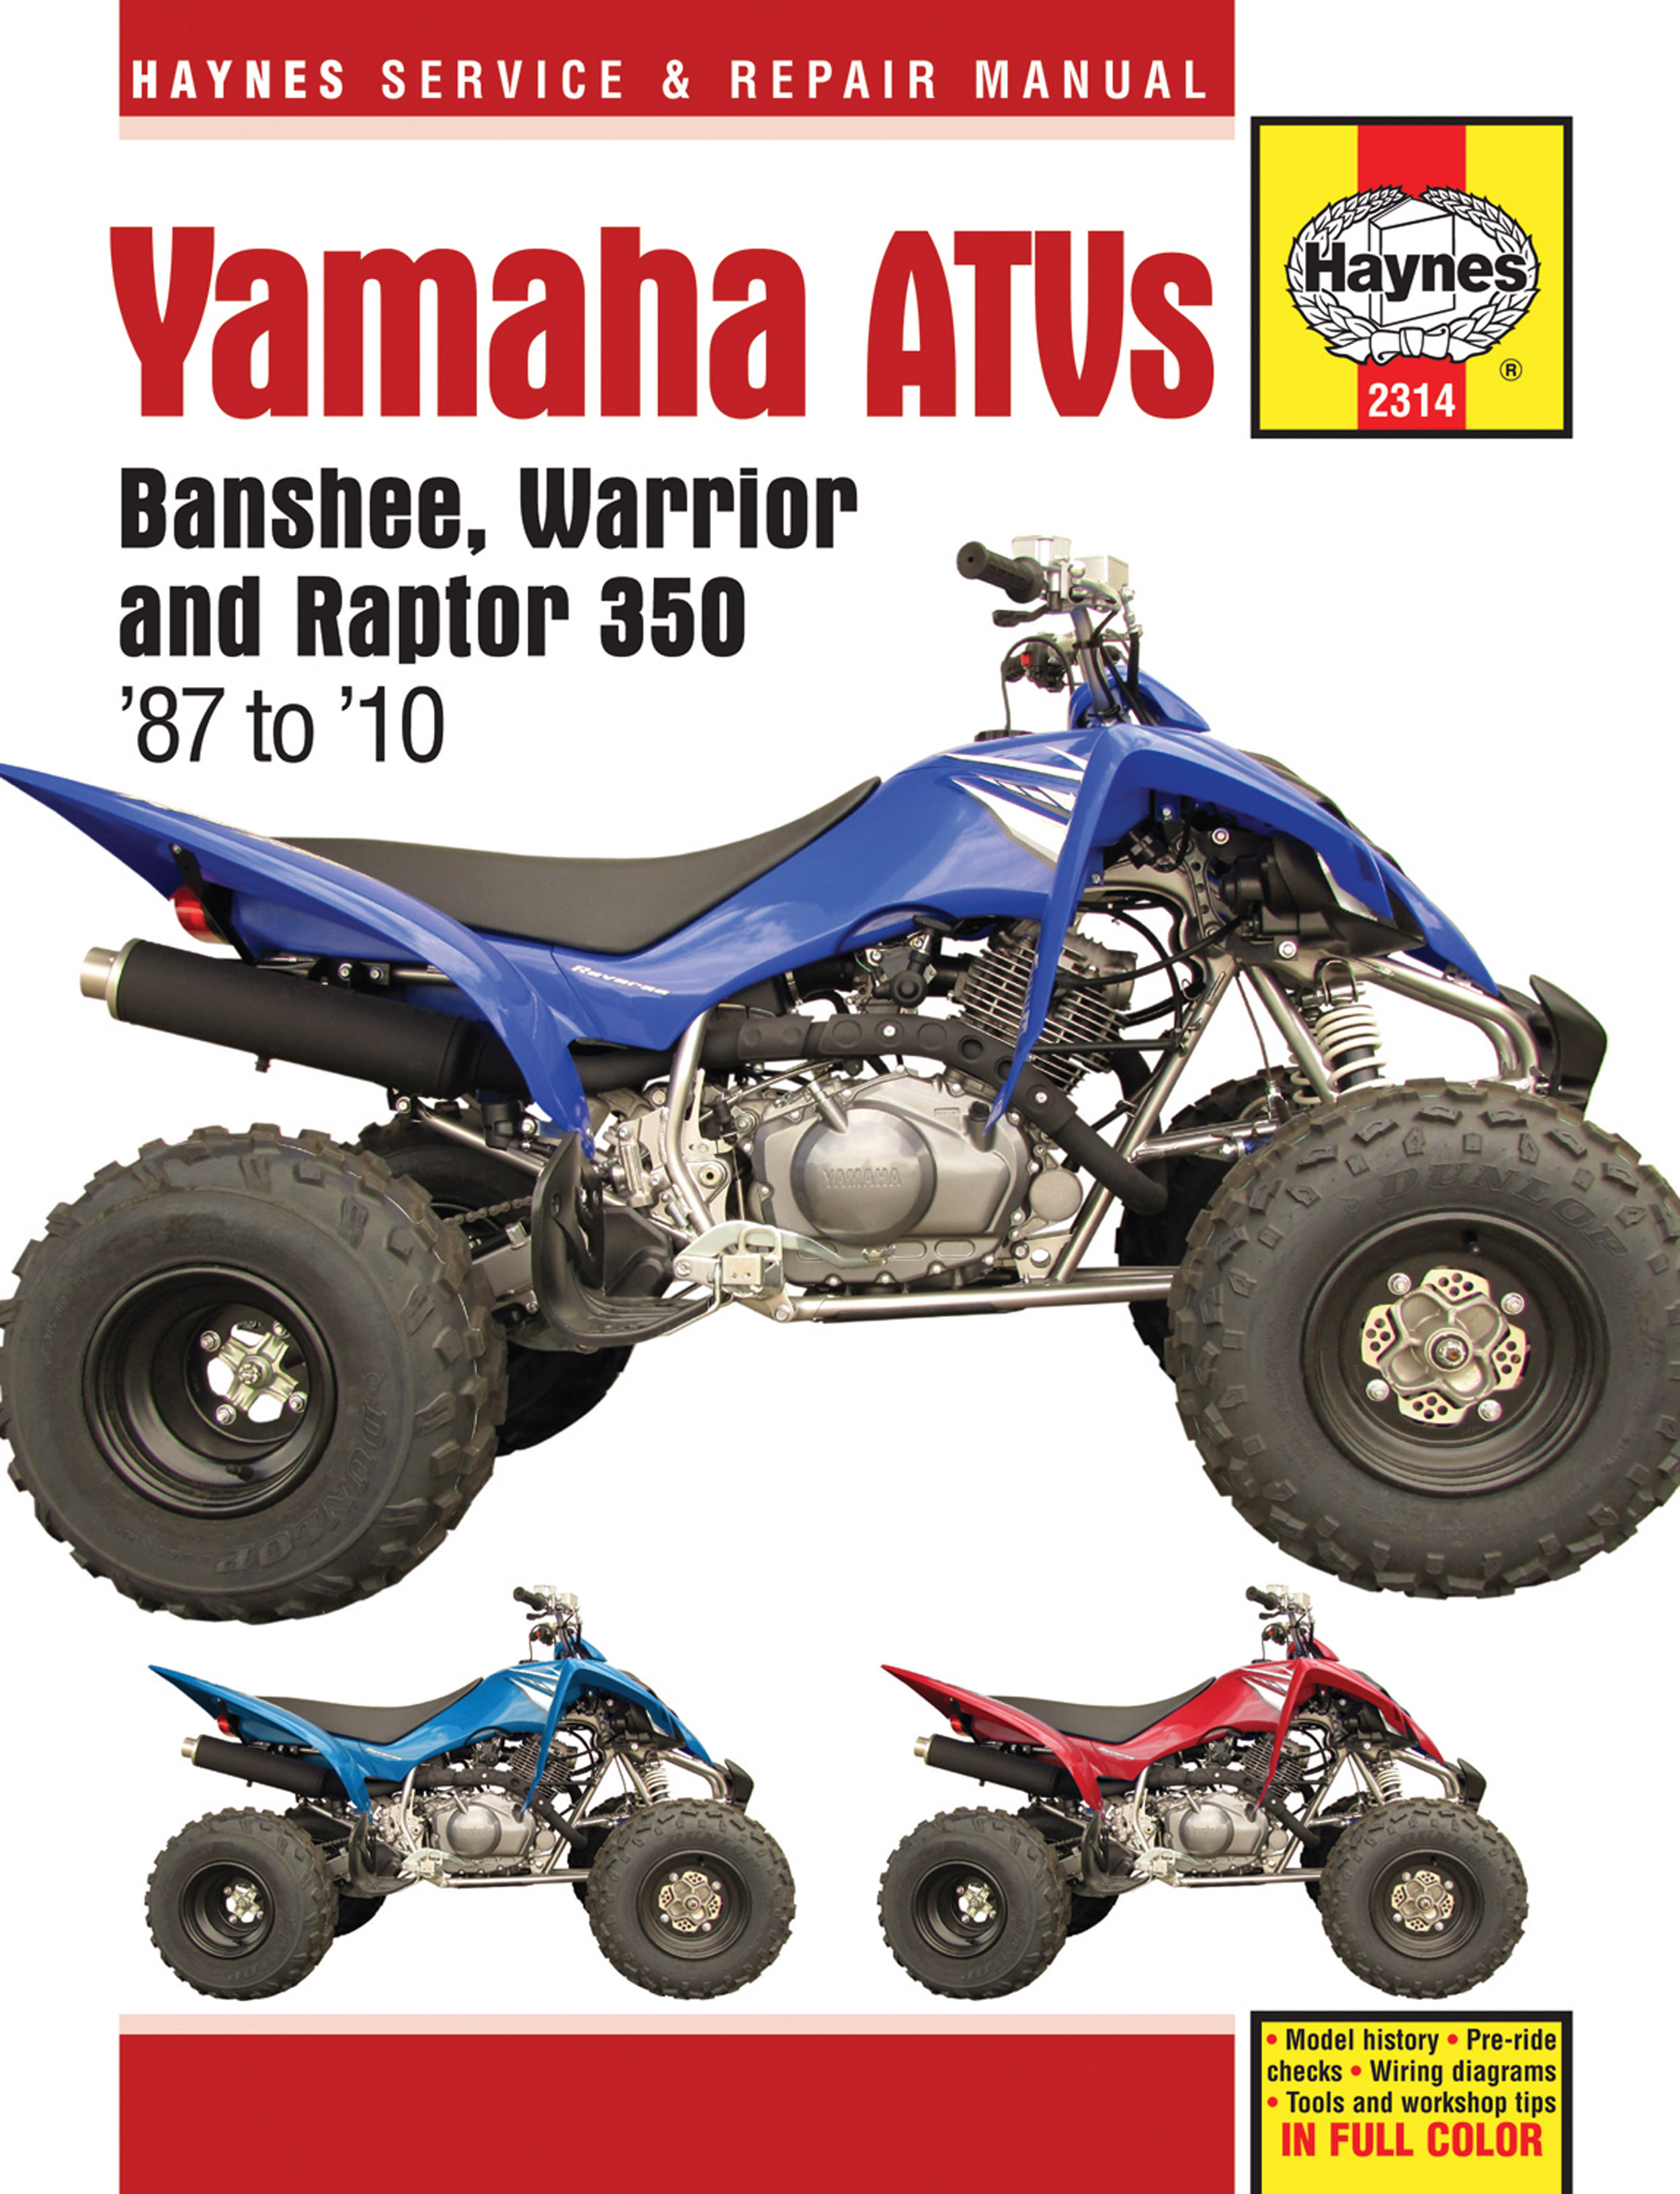 Yamaha Yfz350 Banshee 1987 2006 Repair Manuals 2000 350 Warrior Wiring Diagram Enlarge